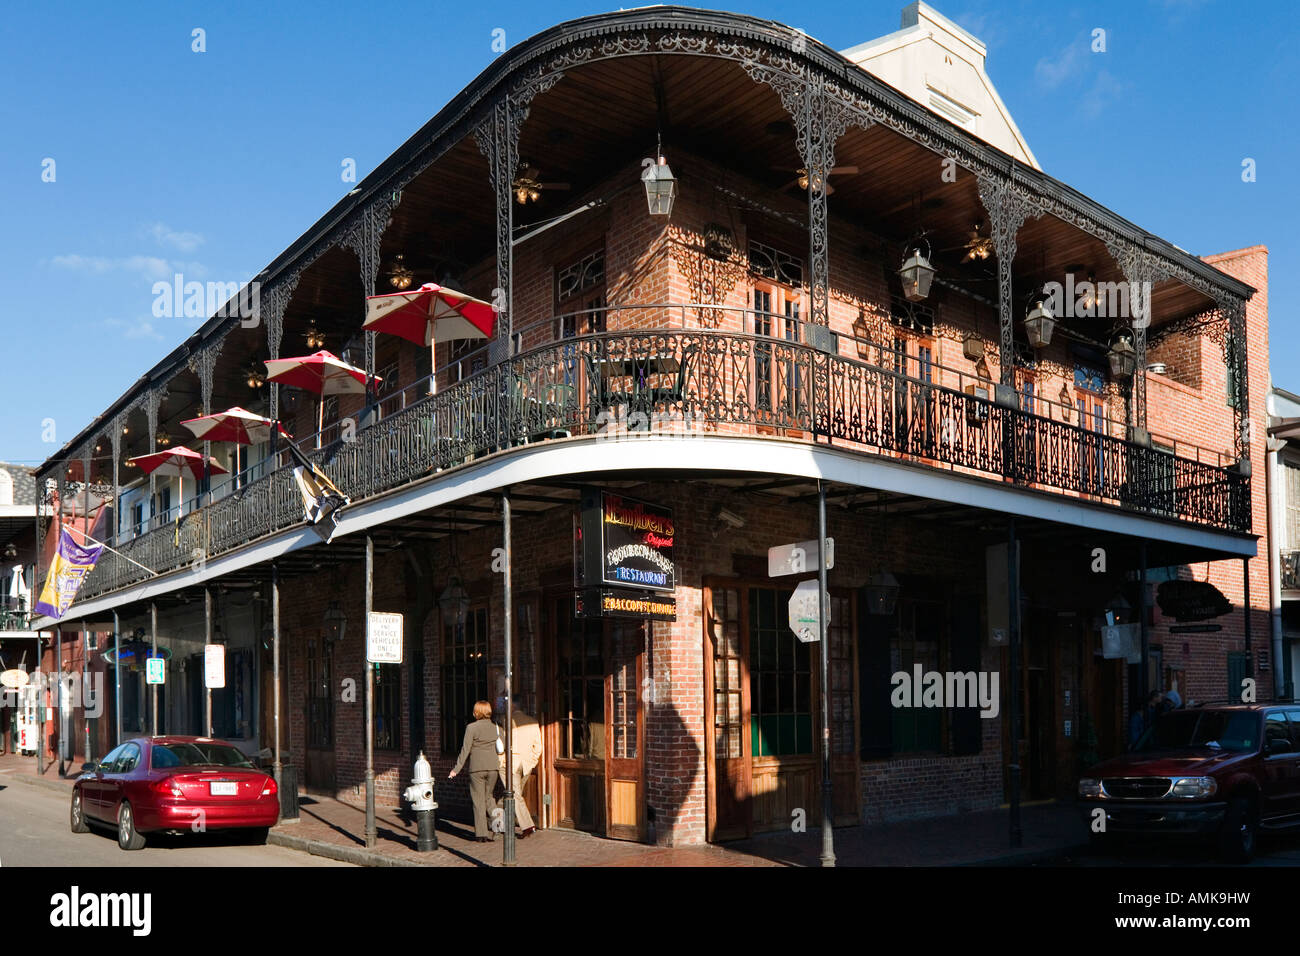 Restaurant With Typical Wrought Iron Balconies French Quarter New